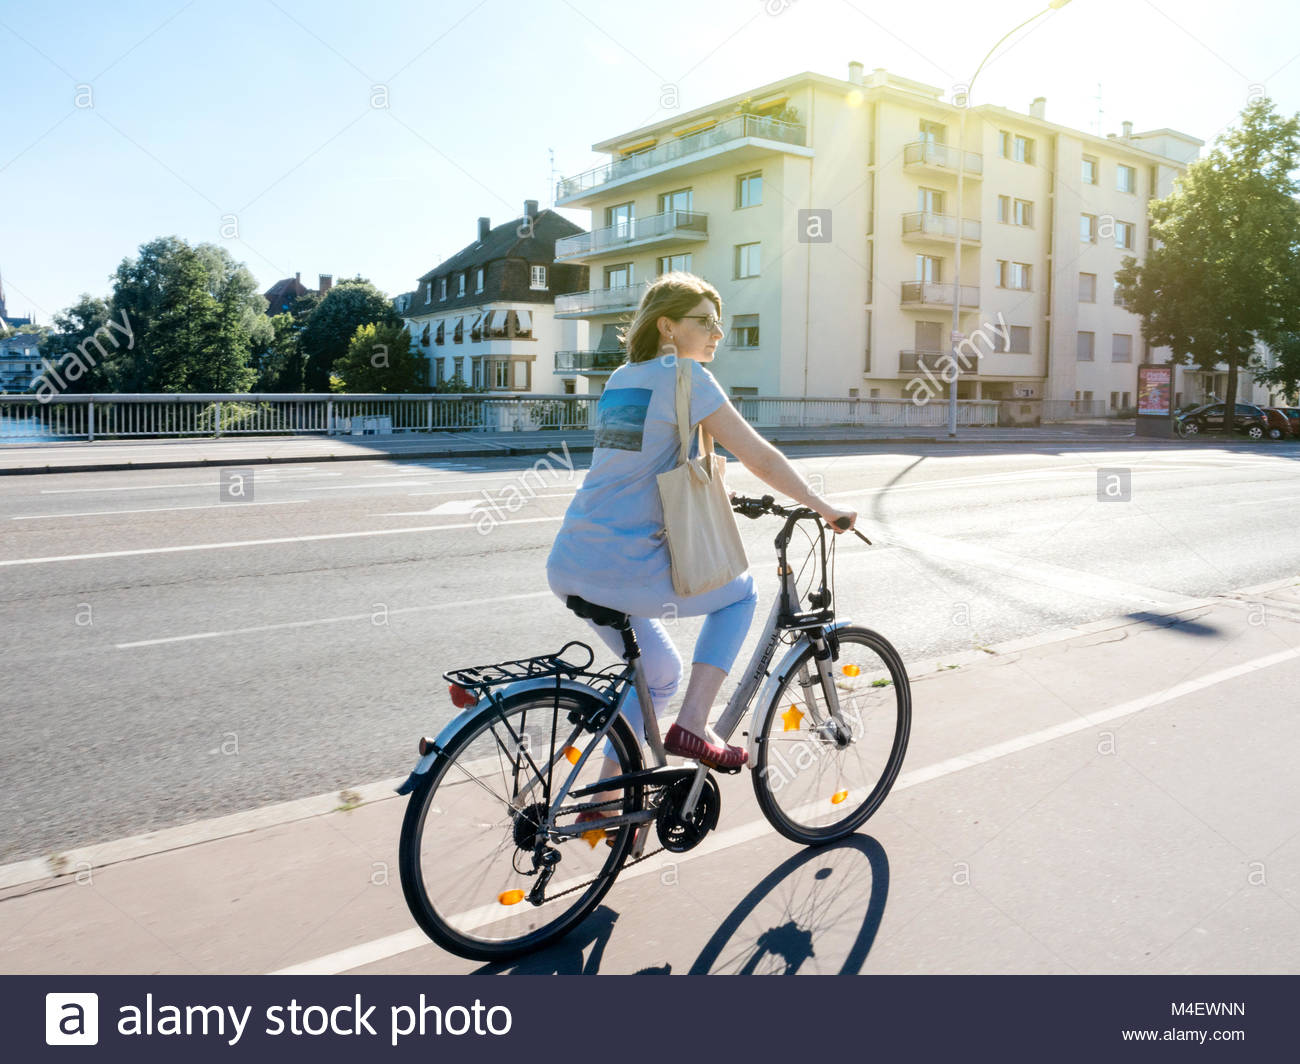 Elegant French woman cycling in Strasbourg, France - Stock Image